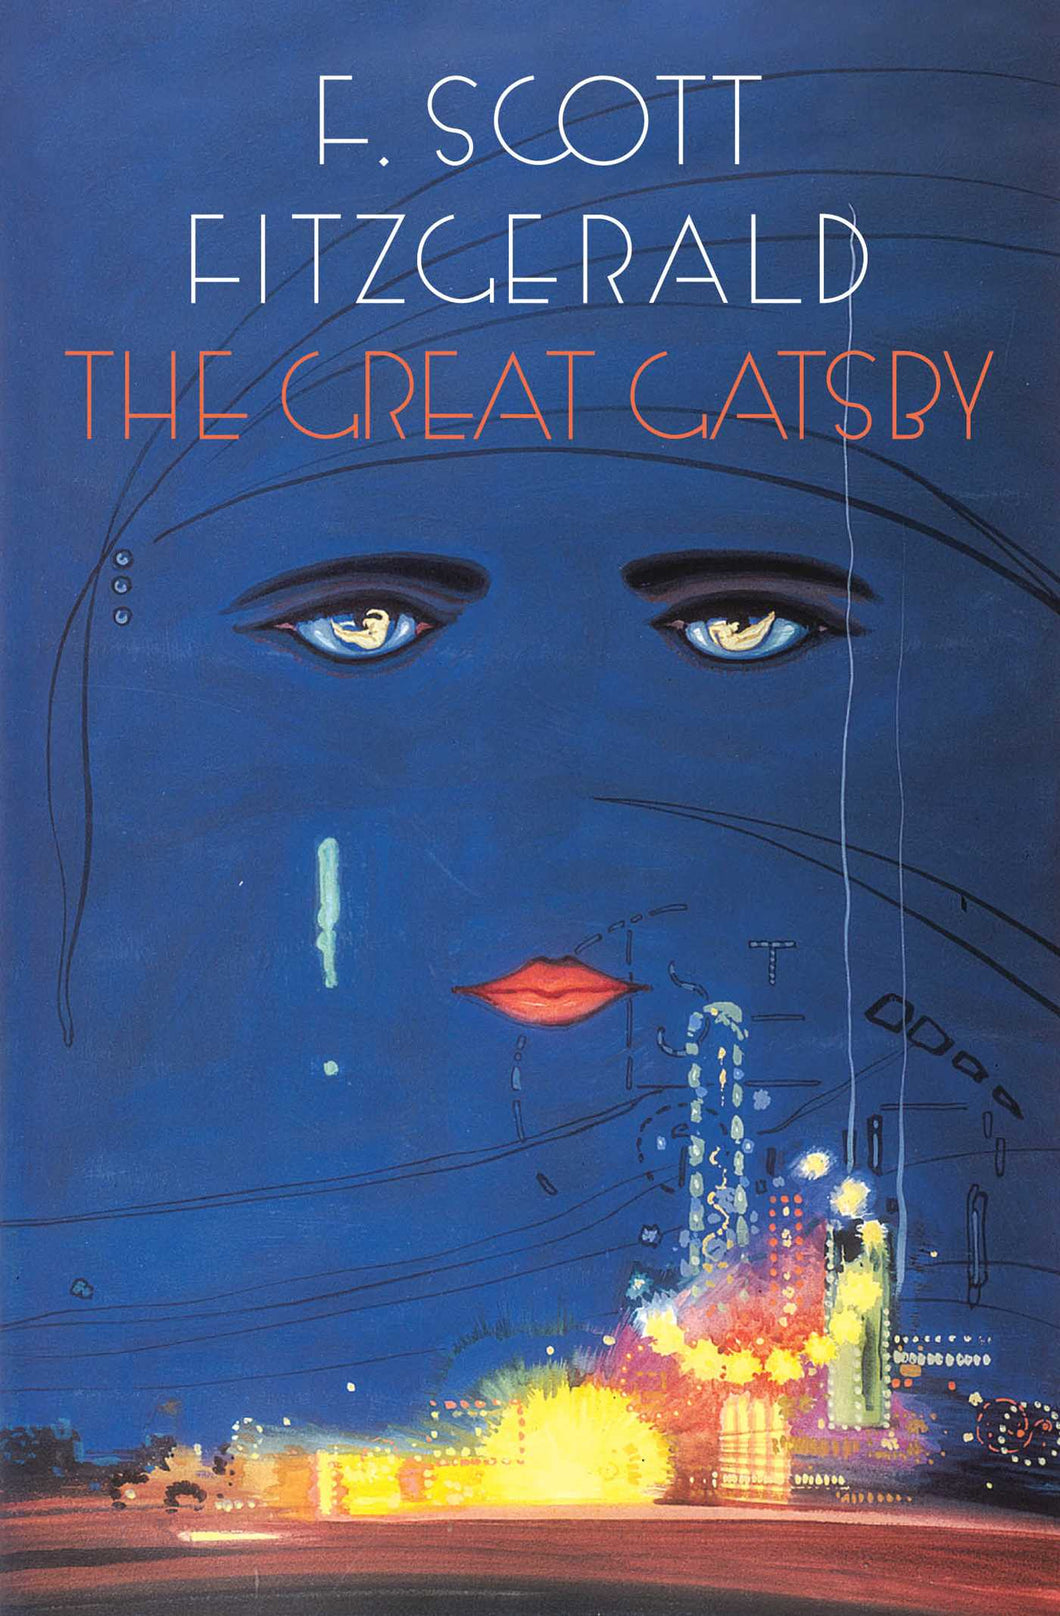 The Great Gatsby - eBook, ePUB, Mobi, PDF (Fast instant delivery)